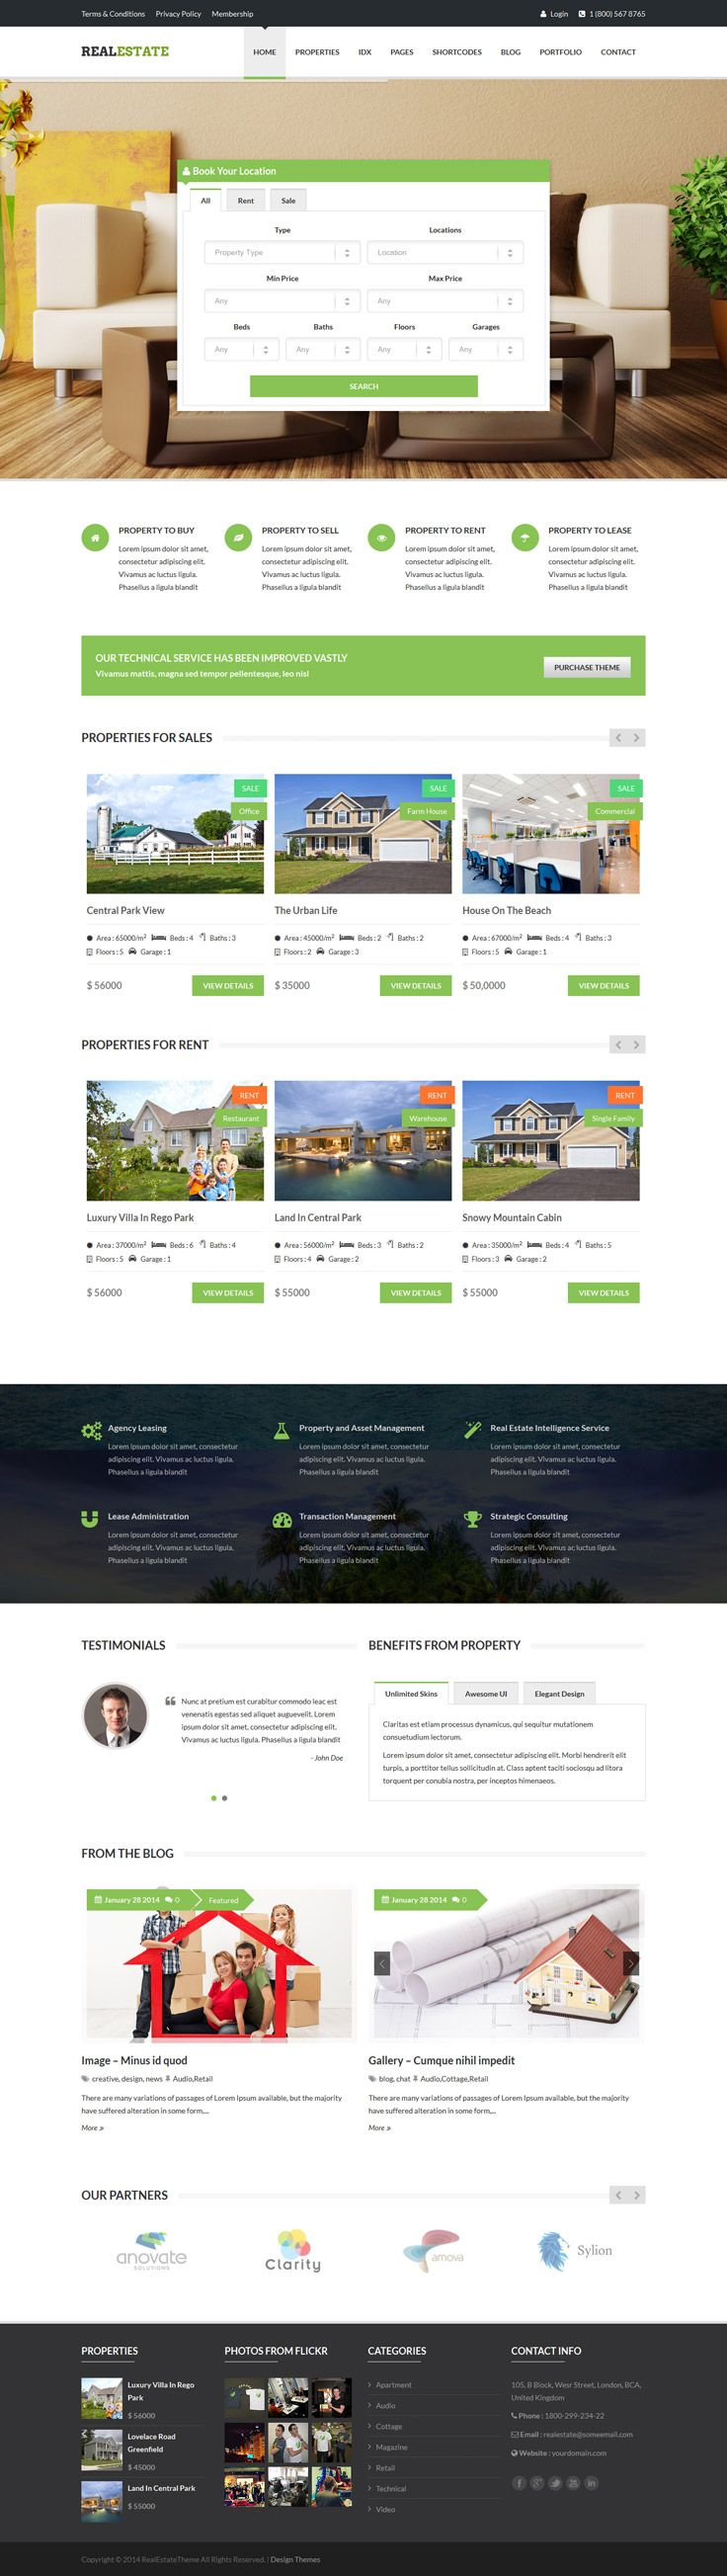 Real Estate is a #Responsive WordPress Theme for full-feature #real estate website and Portal. It has nice & clean design and it adds special integration features like property info, photos, Advanced Search, Google Map with property location markers, simple grid listing, agent login & register, front end property submit & edit, dsIDXpress IDX Plugin support, #WPML plugin support, custom widgets, Widgetized Sidebars, numerous templates, visual short-code builder...